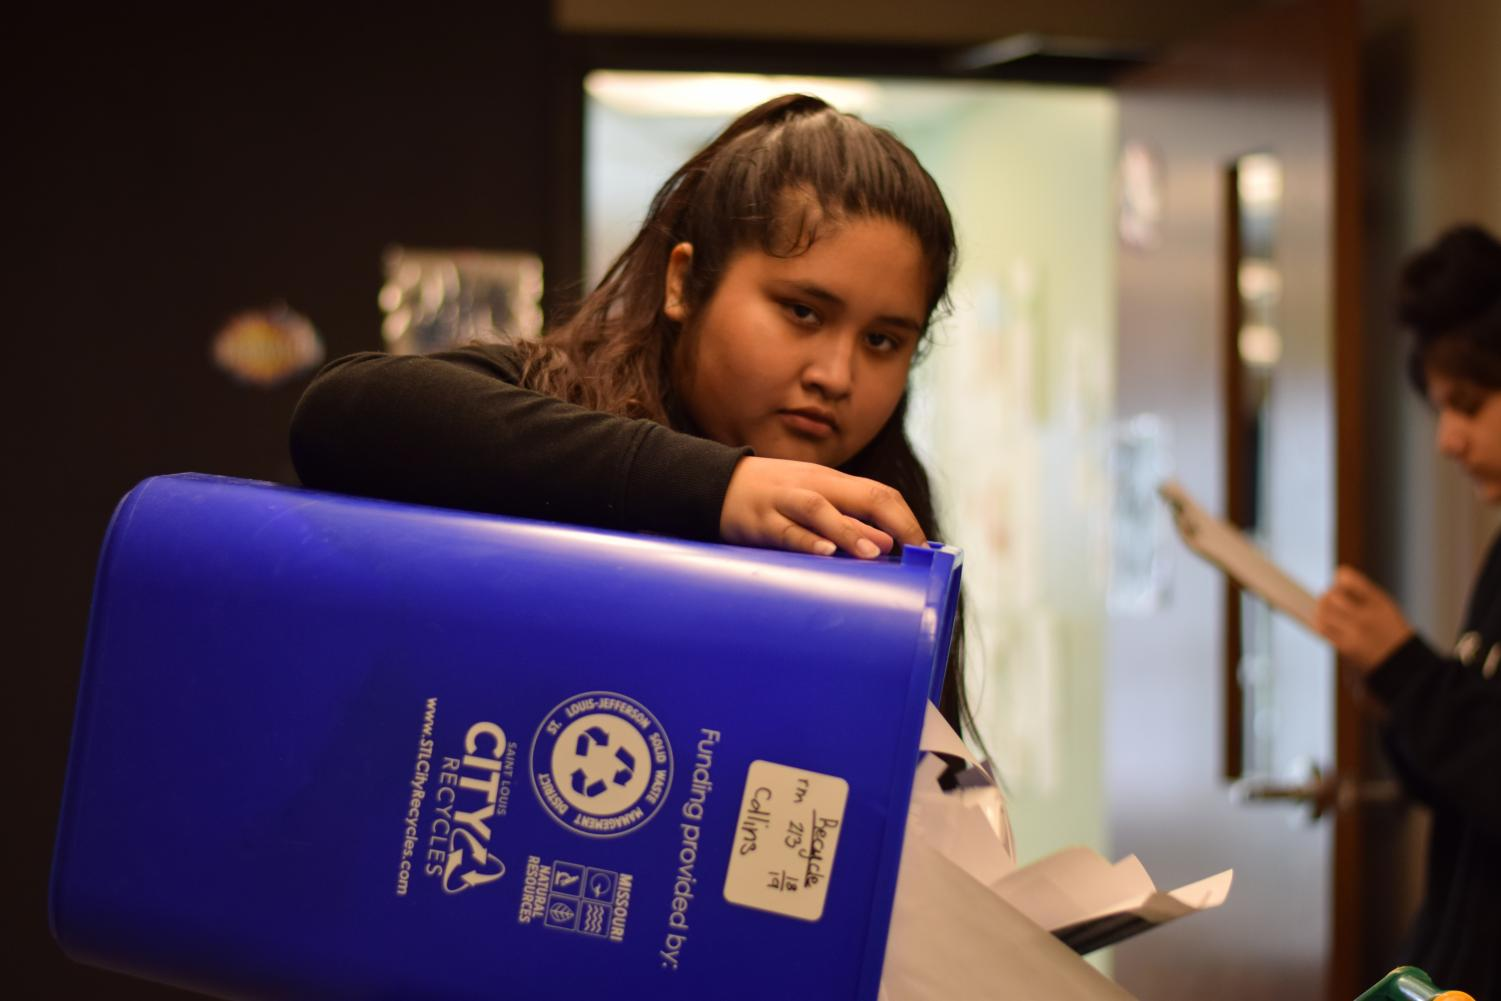 Seventh grader Aelilian Ceron'-Reyes dumps waste from a classroom recycling bin into the main recycling can.